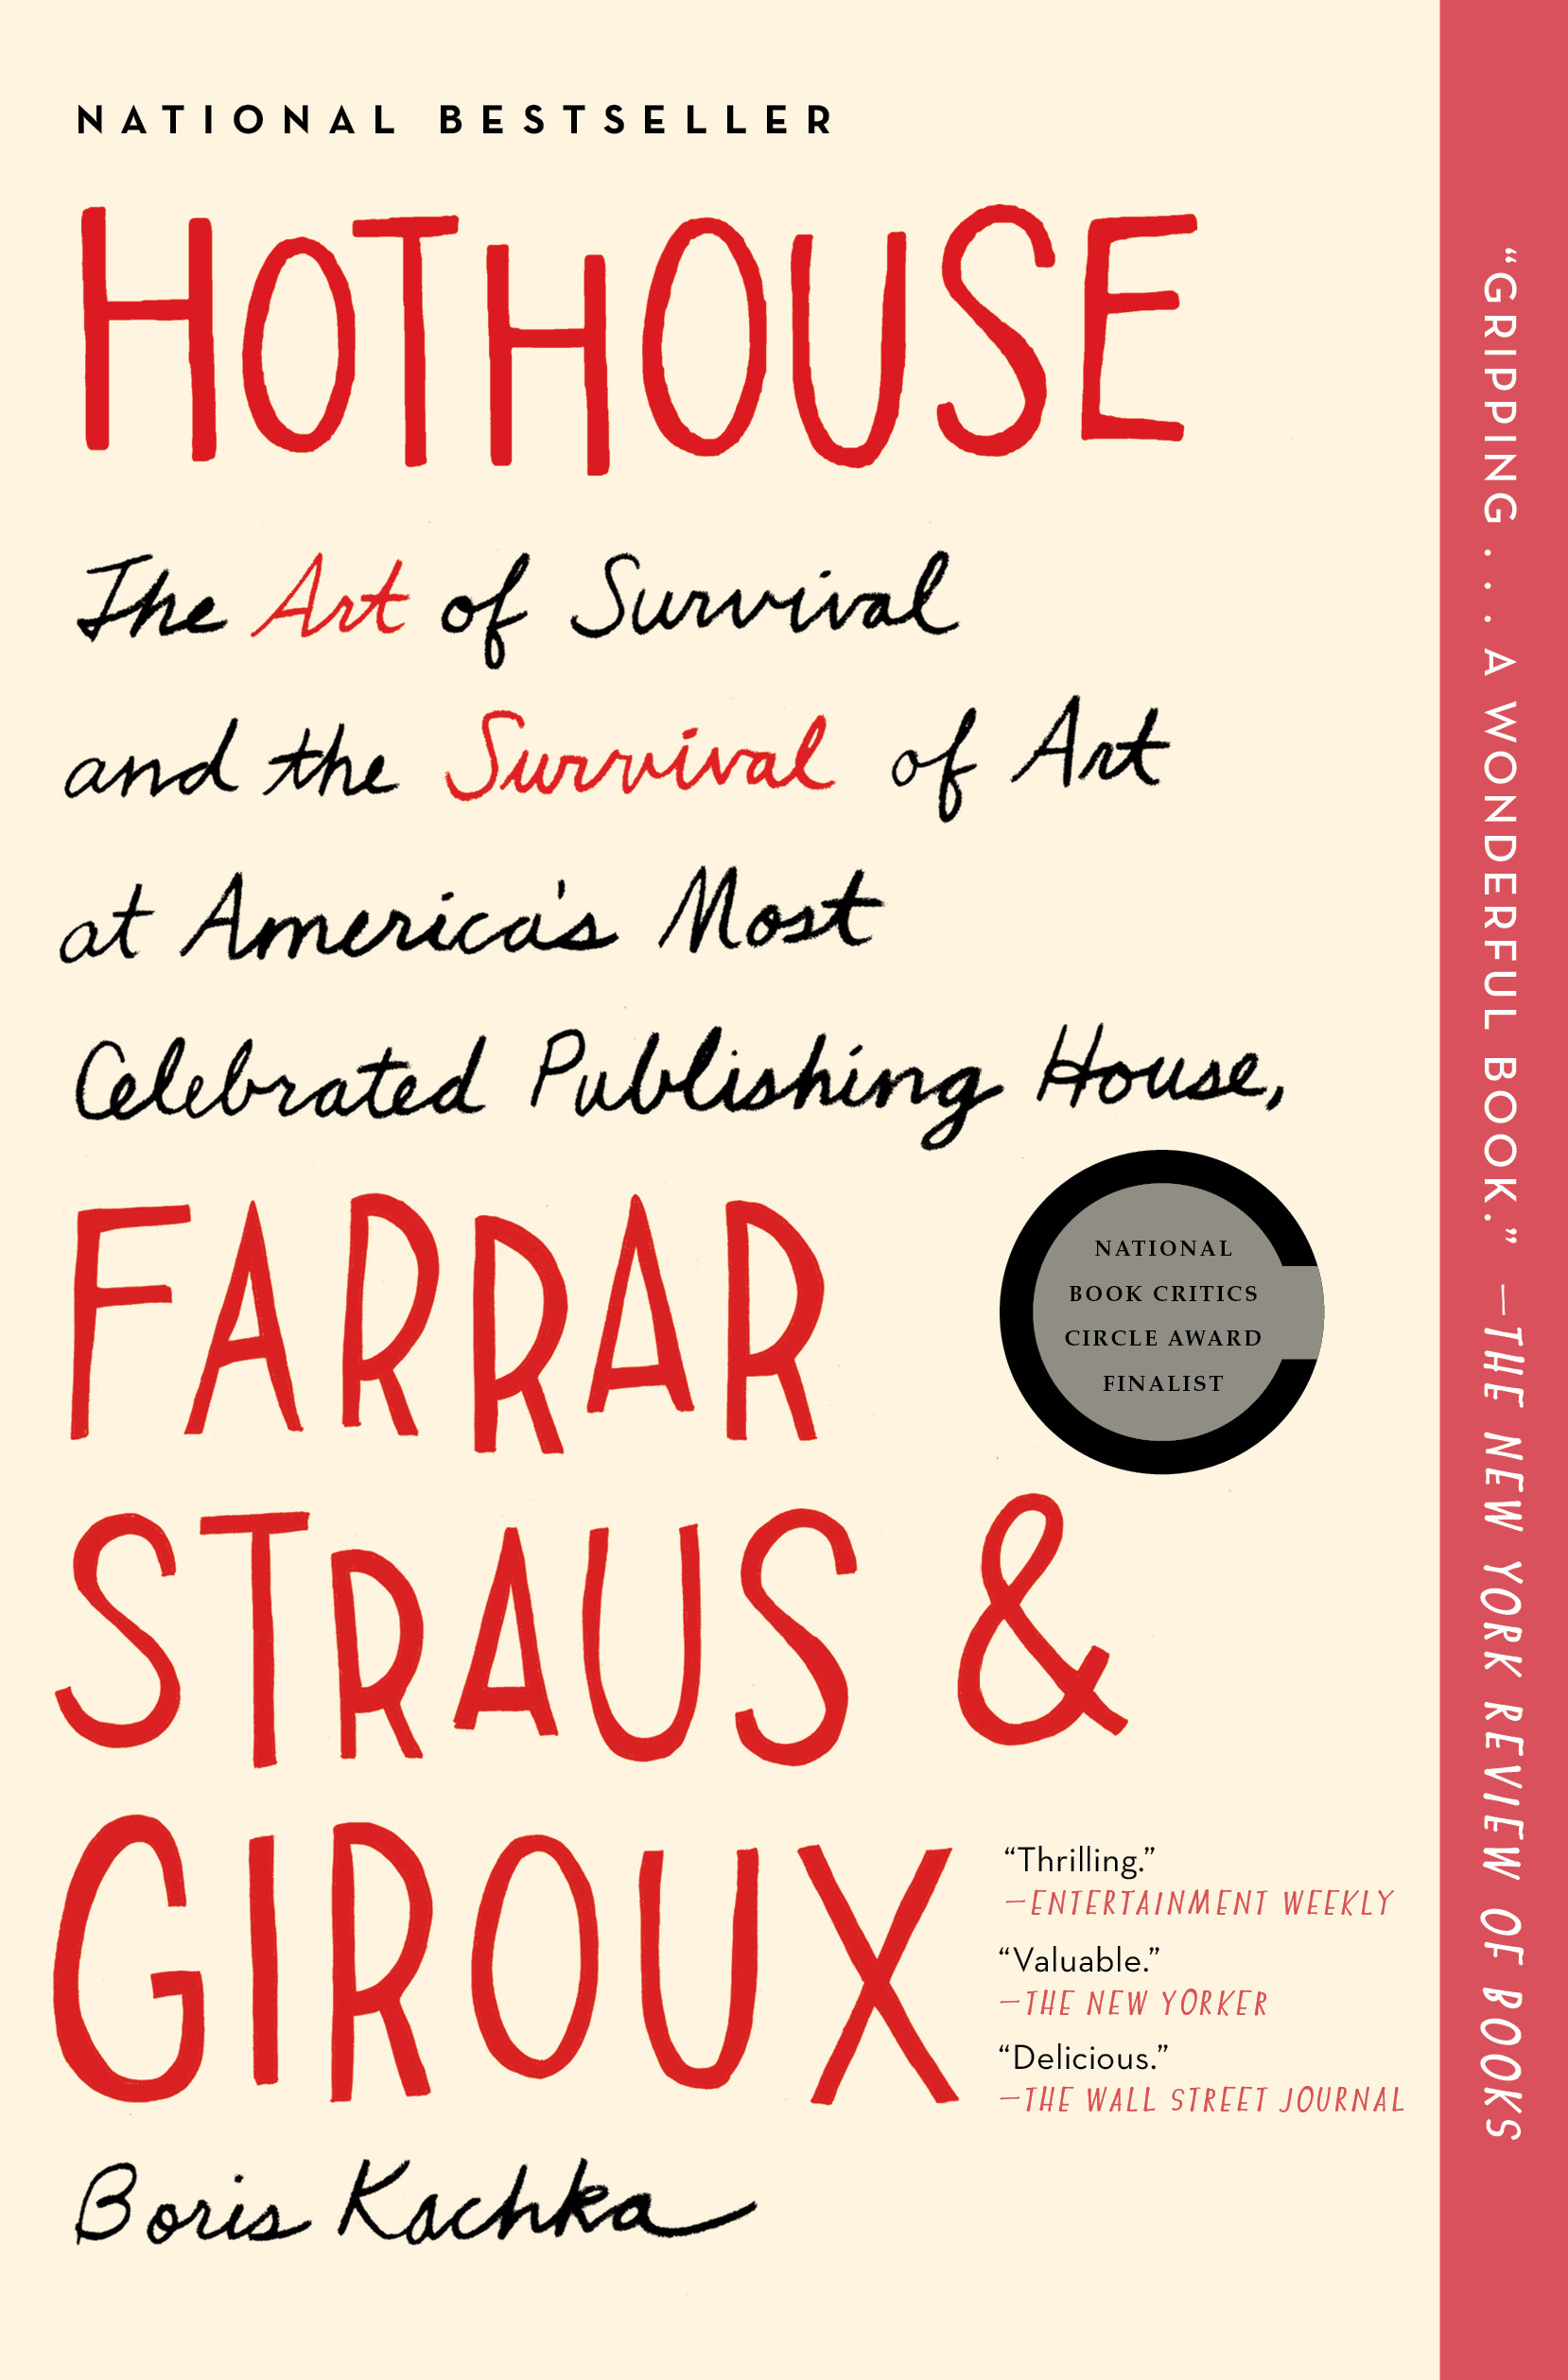 Hothouse The Art of Survival and the Survival of Art at America's Most Celebrated Publishing House, Farrar, Straus, and Giroux